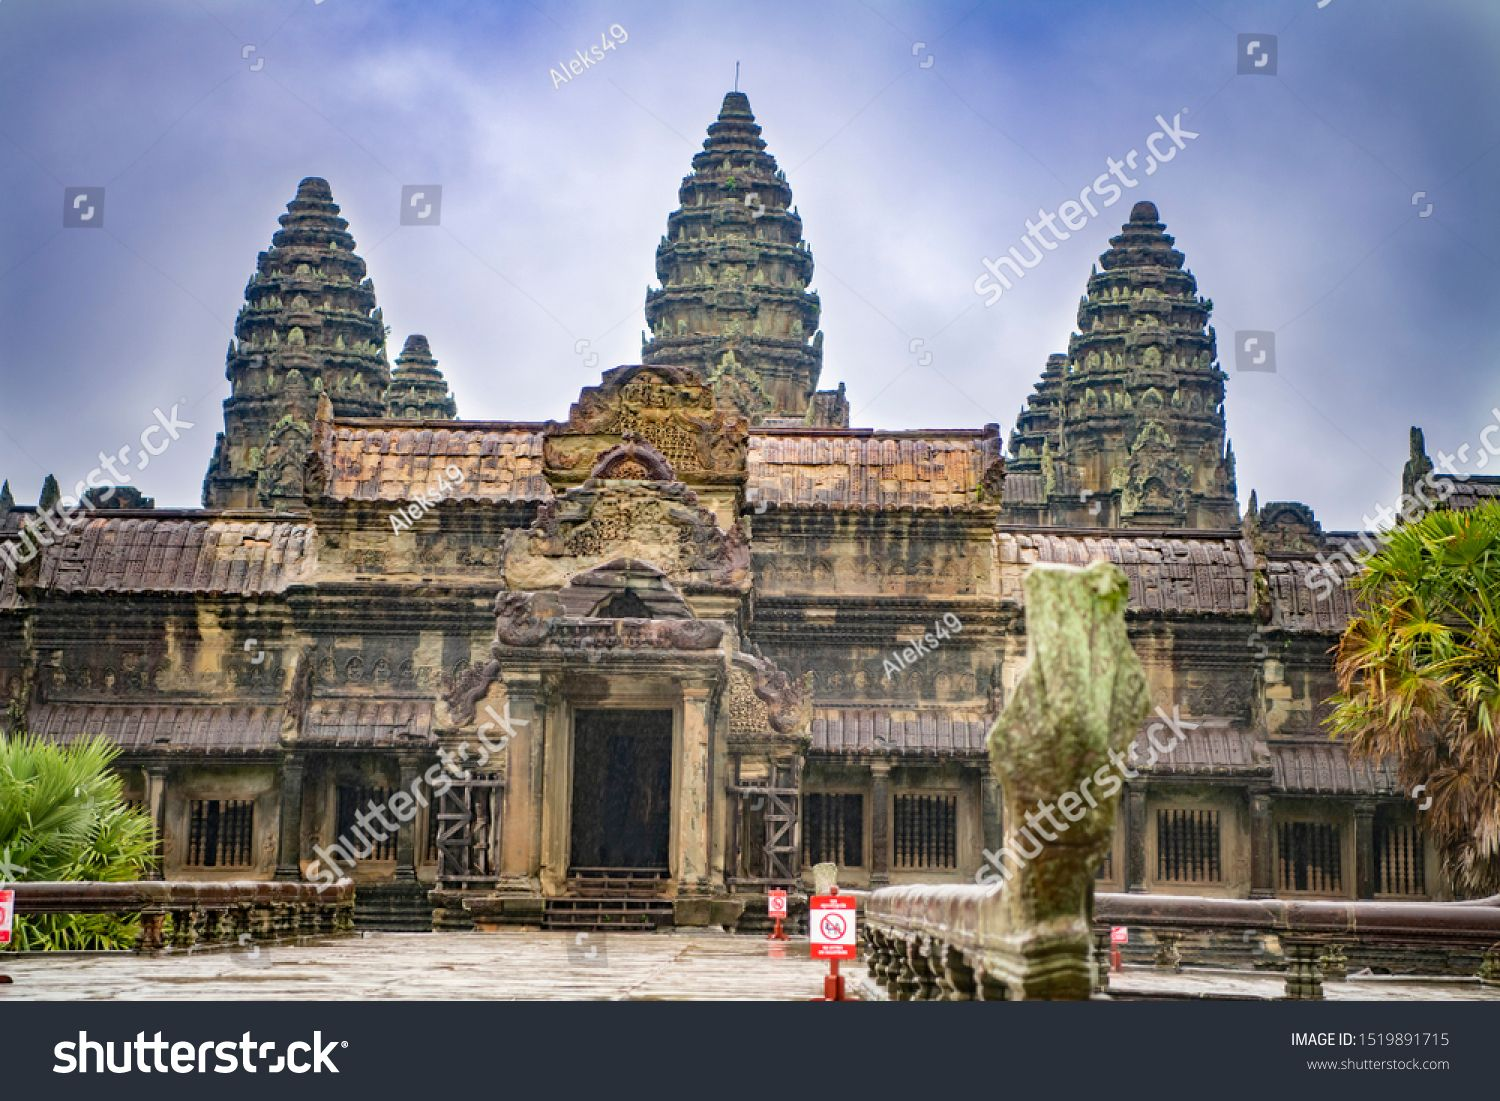 Angkor Wat is the largest temple in the world (Cambodia, 2019). It is raining #Sponsored , #sponsored, #largest#temple#Angkor#Wat